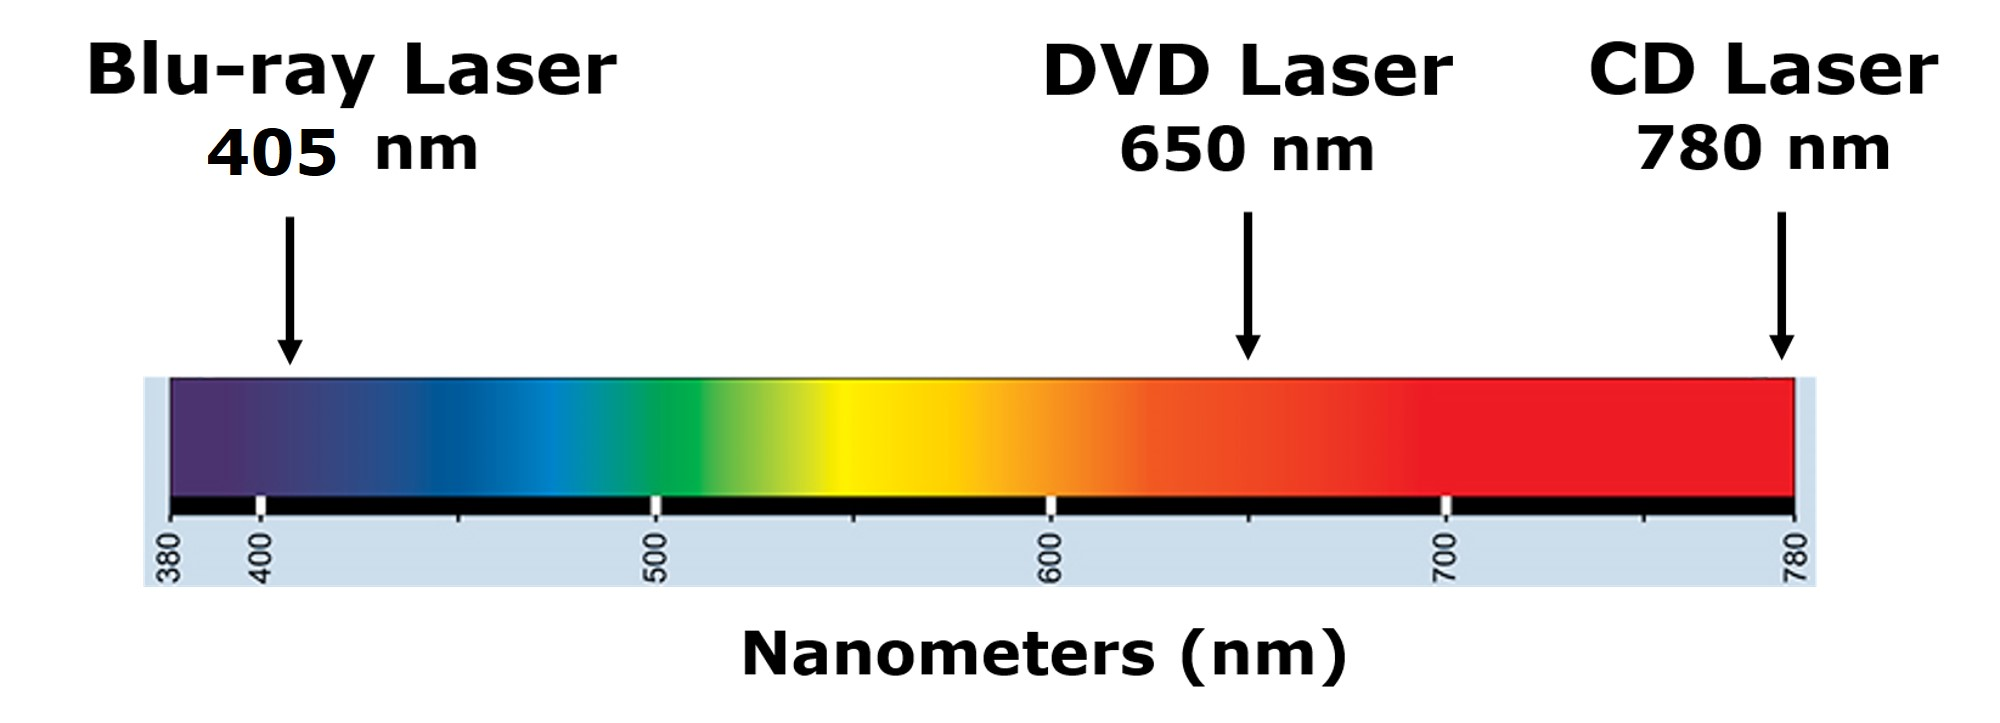 The laser wavelength for reading a CD at 780 nm and in the far red of the light spectrum, a DVD at 650 nm and in the near red, and a Blu-ray disc at 405 nm and in the blue/violet wavelength region.